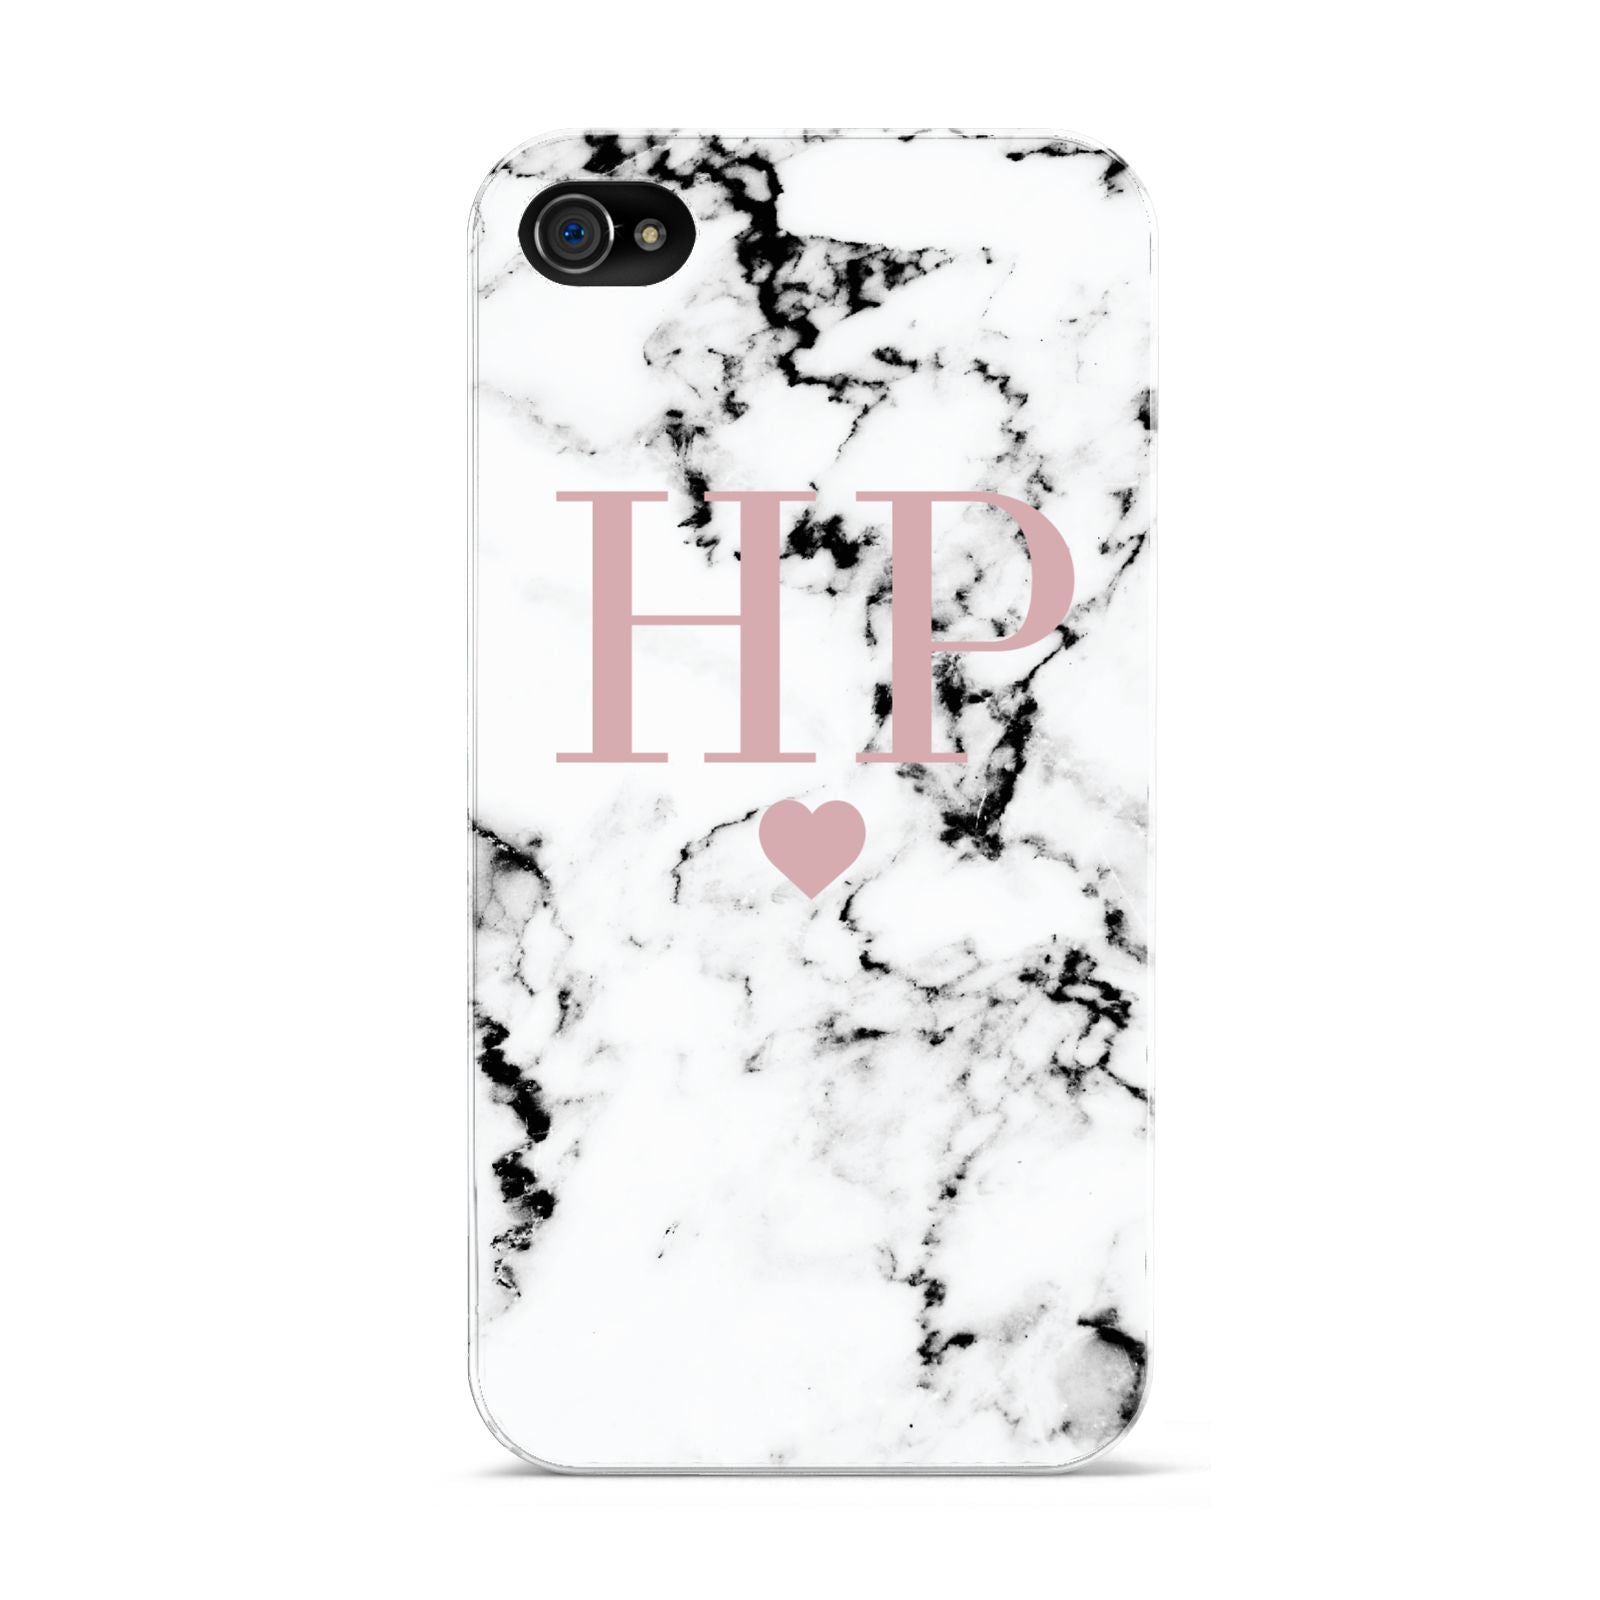 Marble Blush Pink Heart Personalised Apple iPhone 4s Case